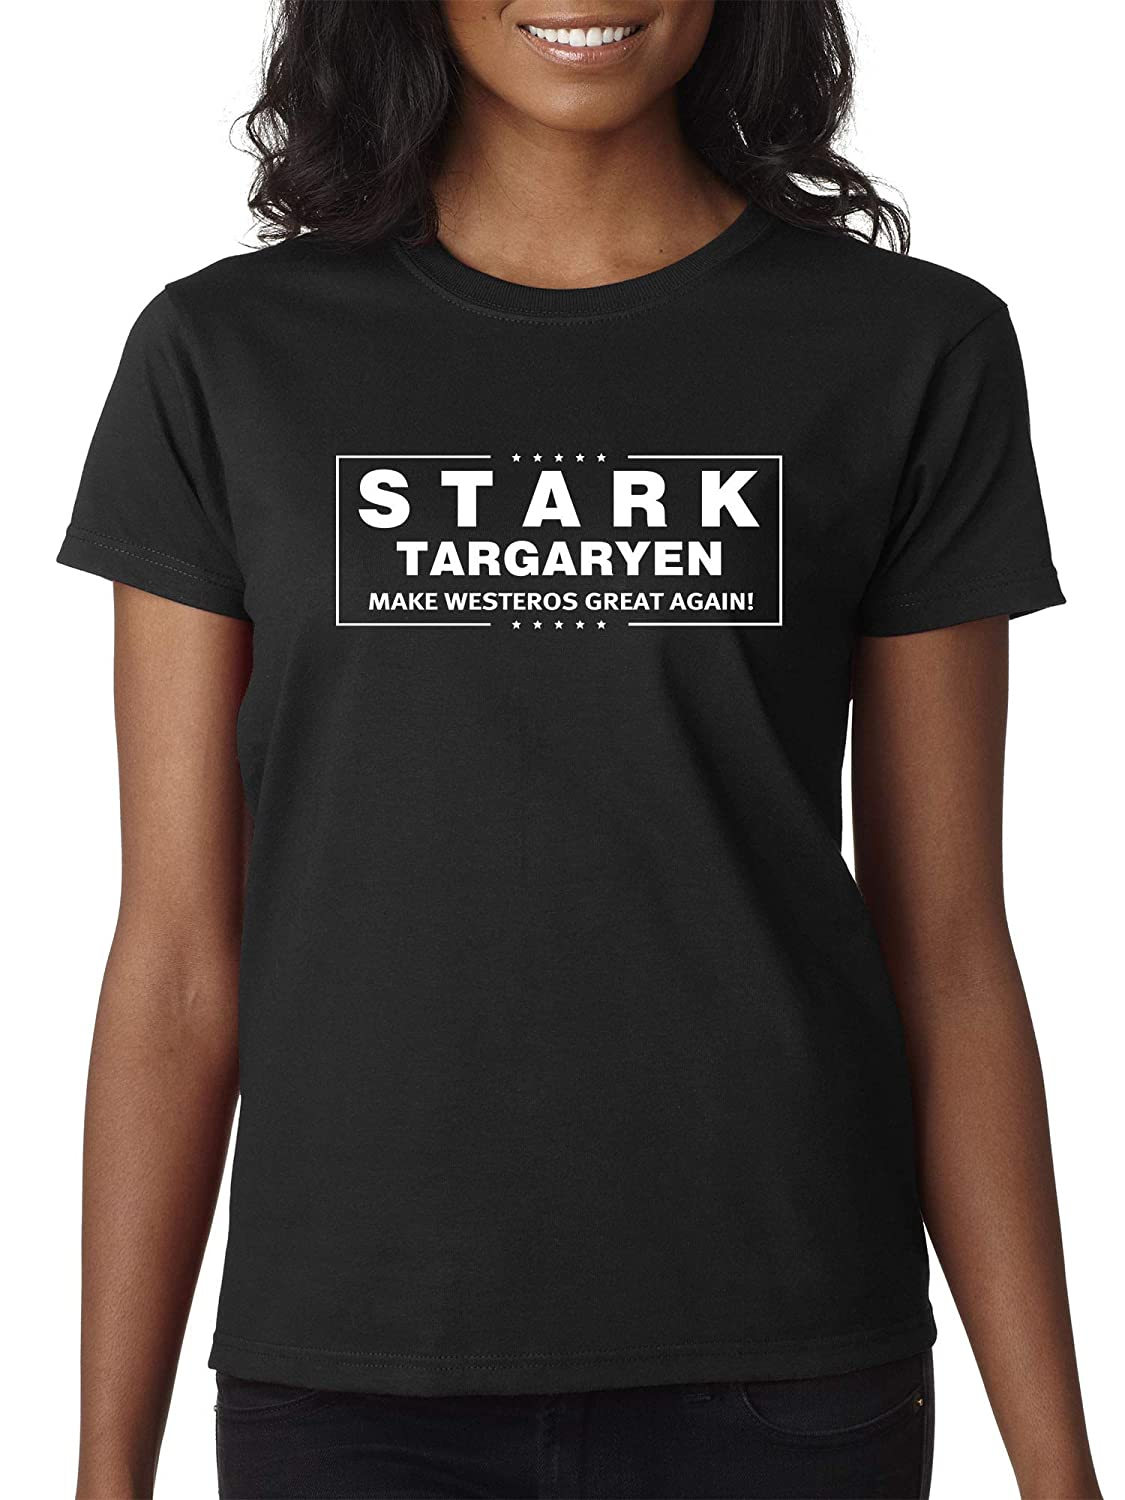 Black Trendy USA 775  Women's TShirt Stark Targaryen Game of Thrones Election